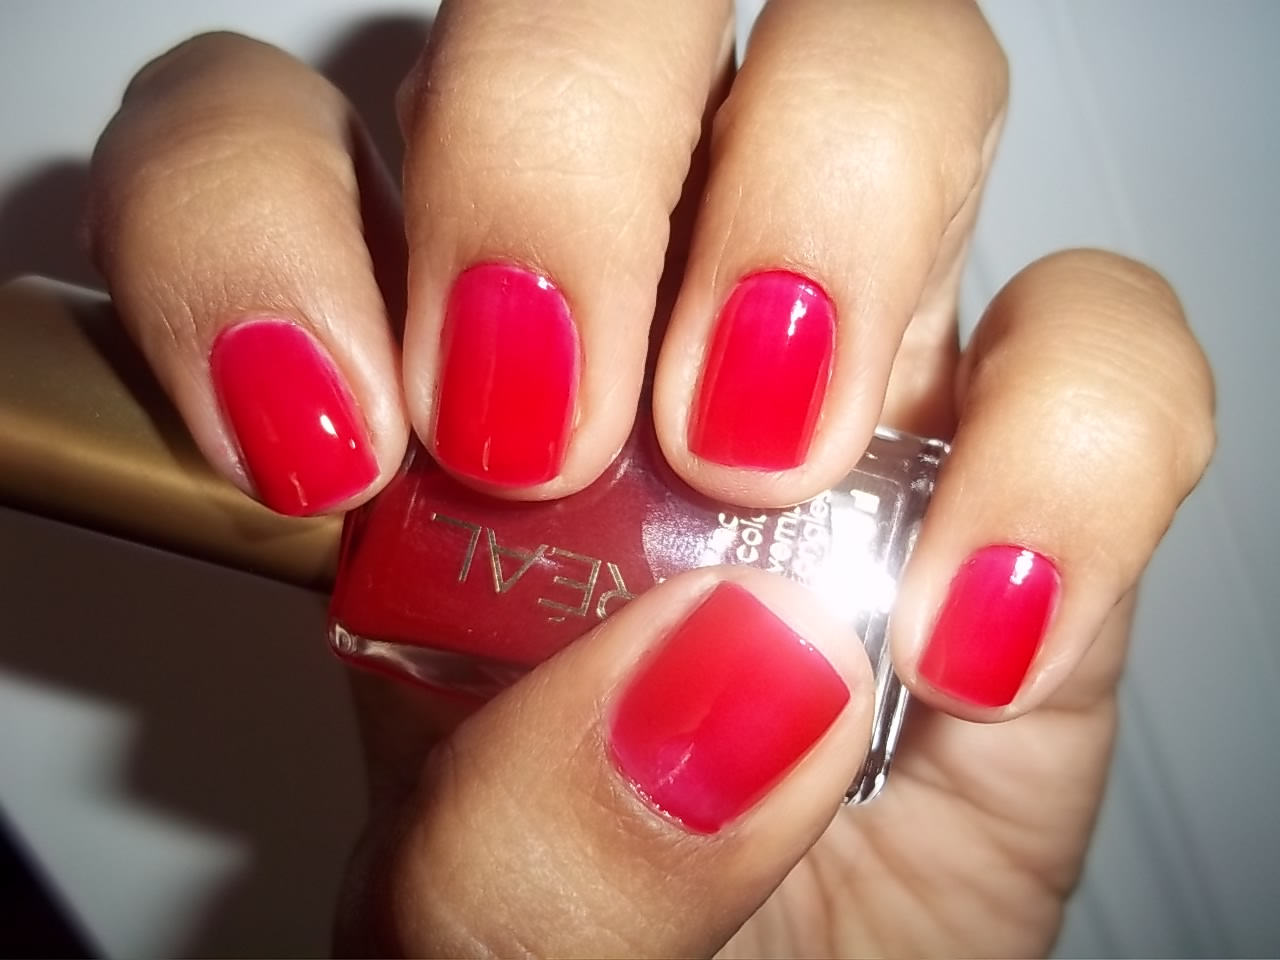 Oreal Limited Edition Miss Candy Collection Nail Color in Jolly Lolly